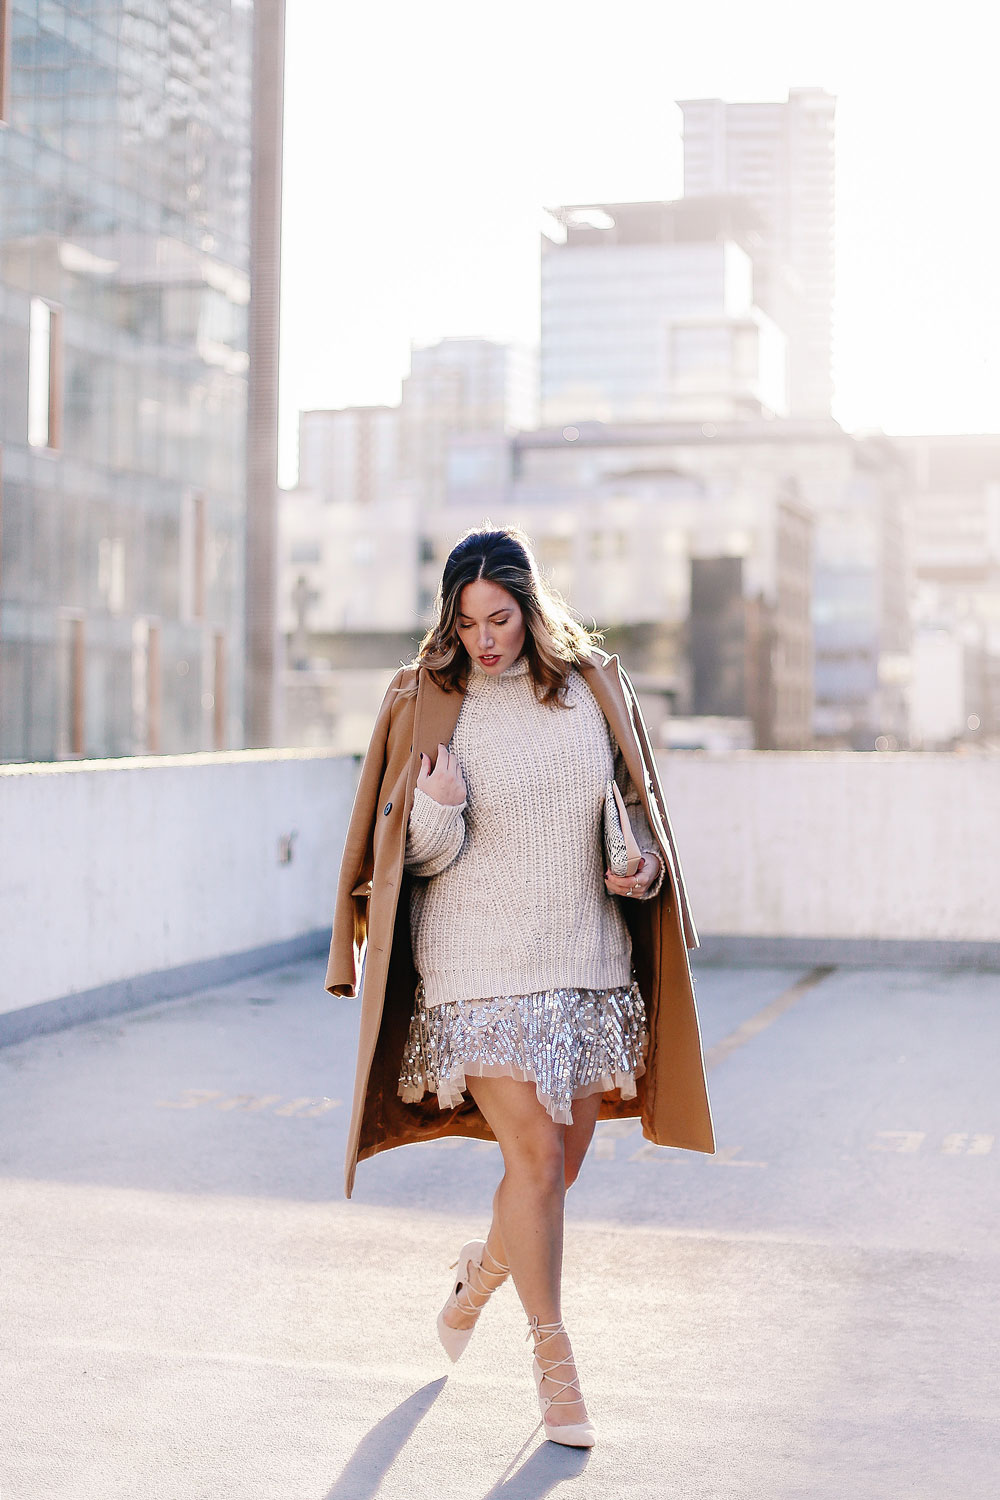 Holiday style tips in a Free People sequin dress, Sanctuary knit sweater, Raye lace up heels, Aritzia camel wool coat and Ted Baker blush clutch styled by To Vogue or Bust